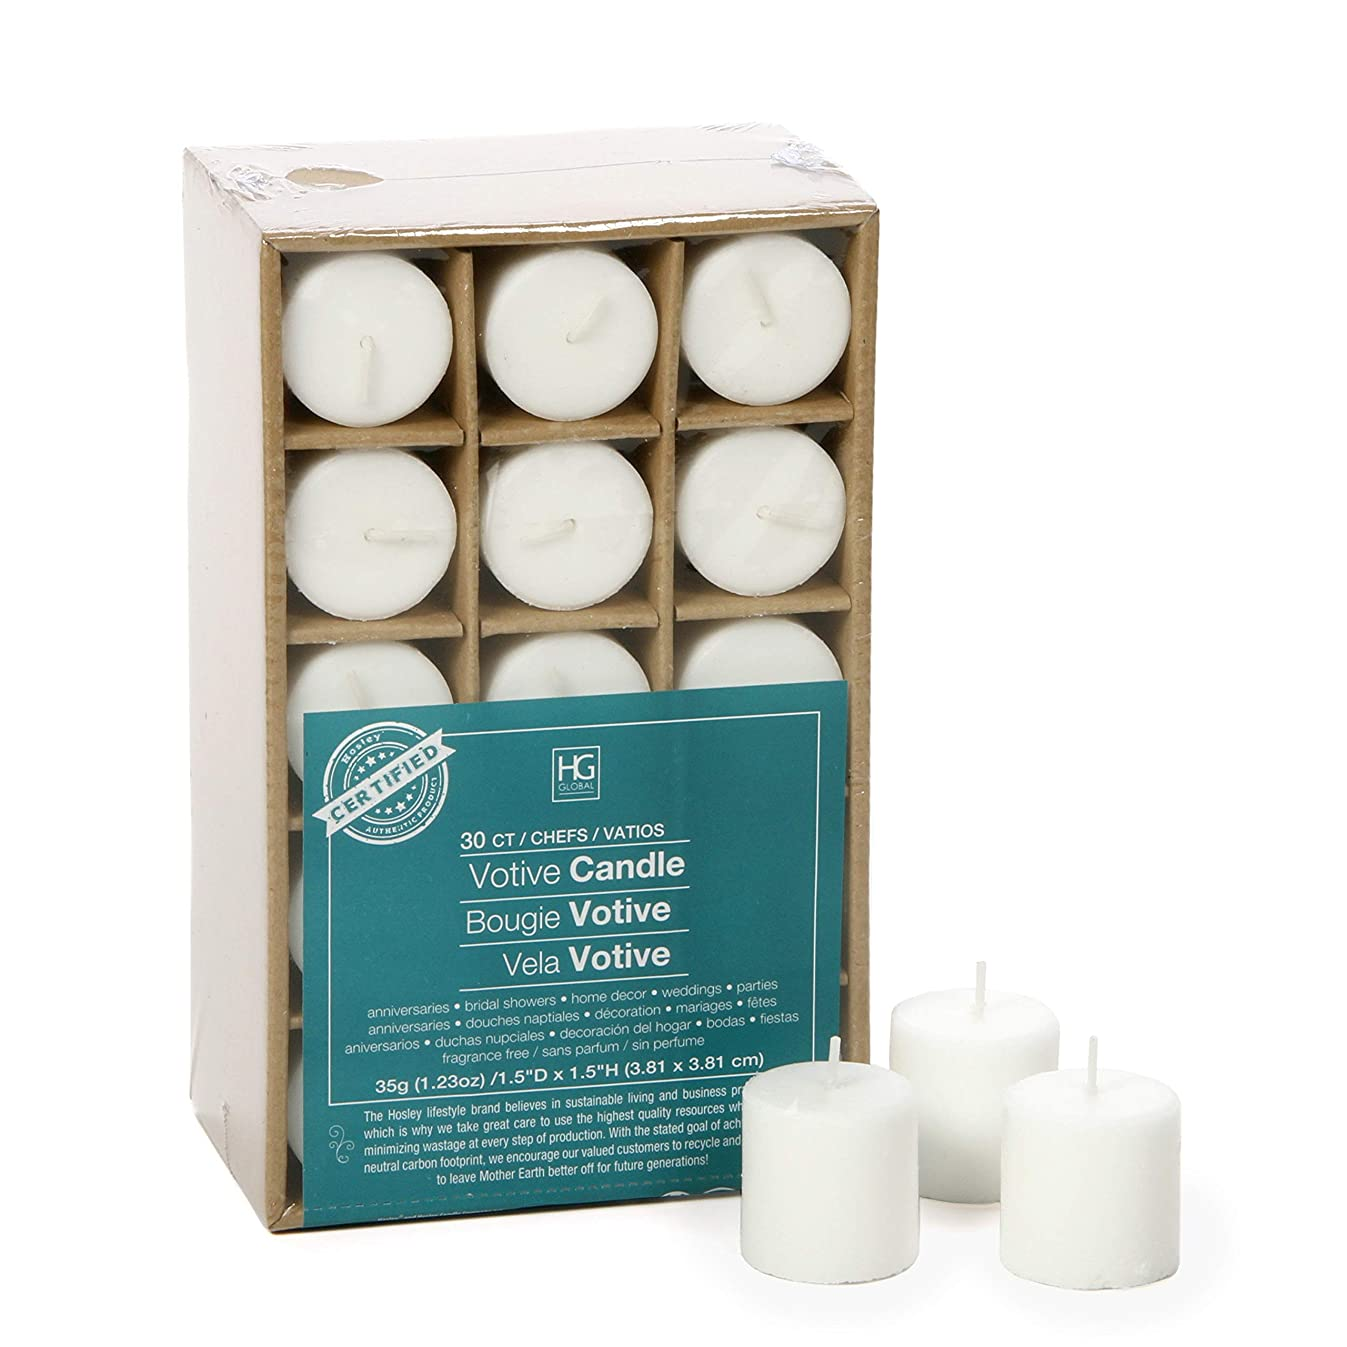 Hosley Set of 30 White Unscented Votive Candles. Up to 10 Hour Burn. Bulk Buy. Wax Blend. Ideal for Wedding, Birthday, Spa, Aromatherapy, Party, Everyday Use O2